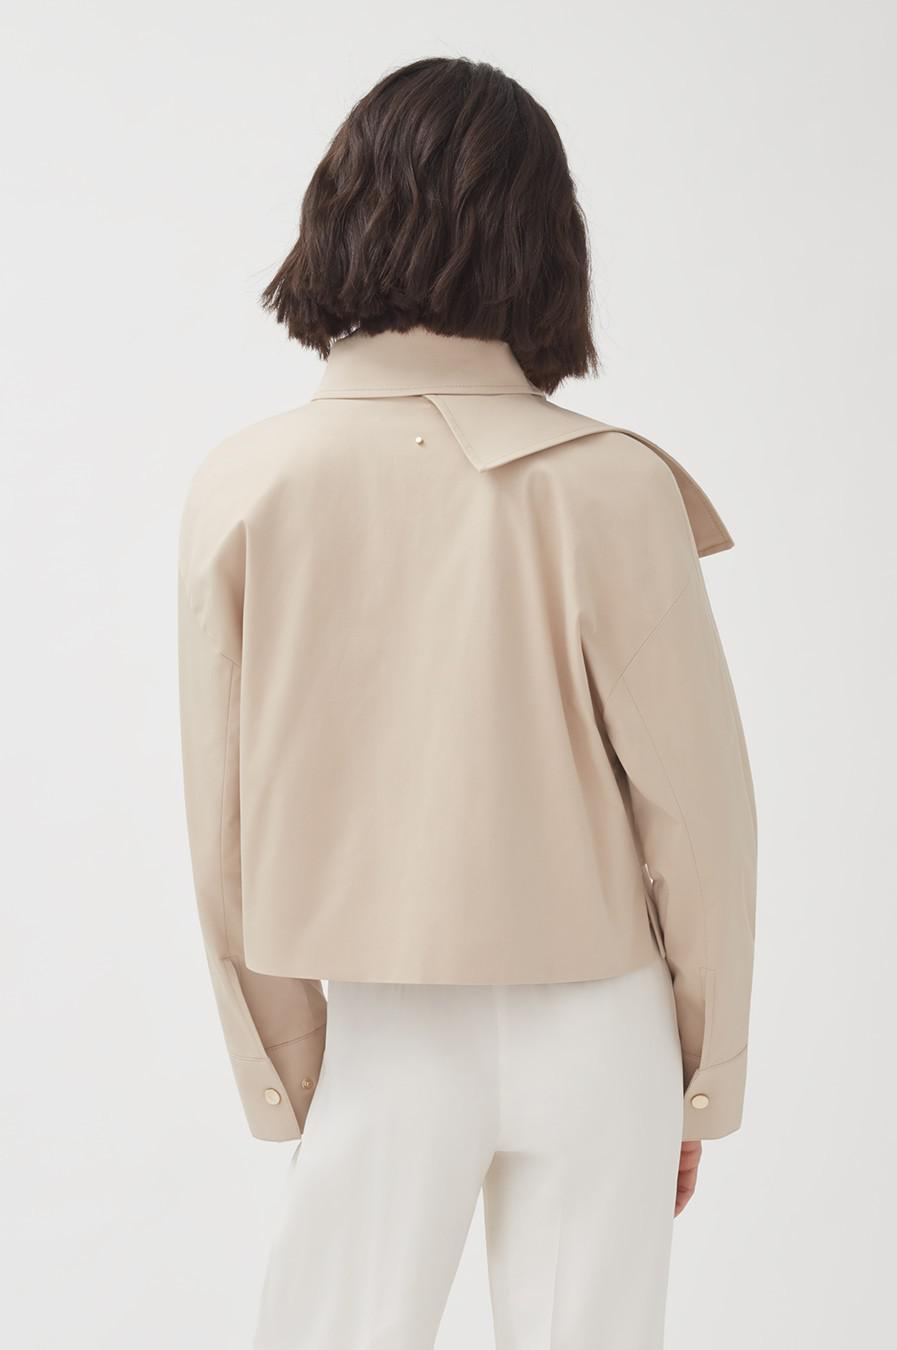 Women's Cropped Trench in Dune | Size: L/XL | Cotton Elastane Blend by Cuyana 3